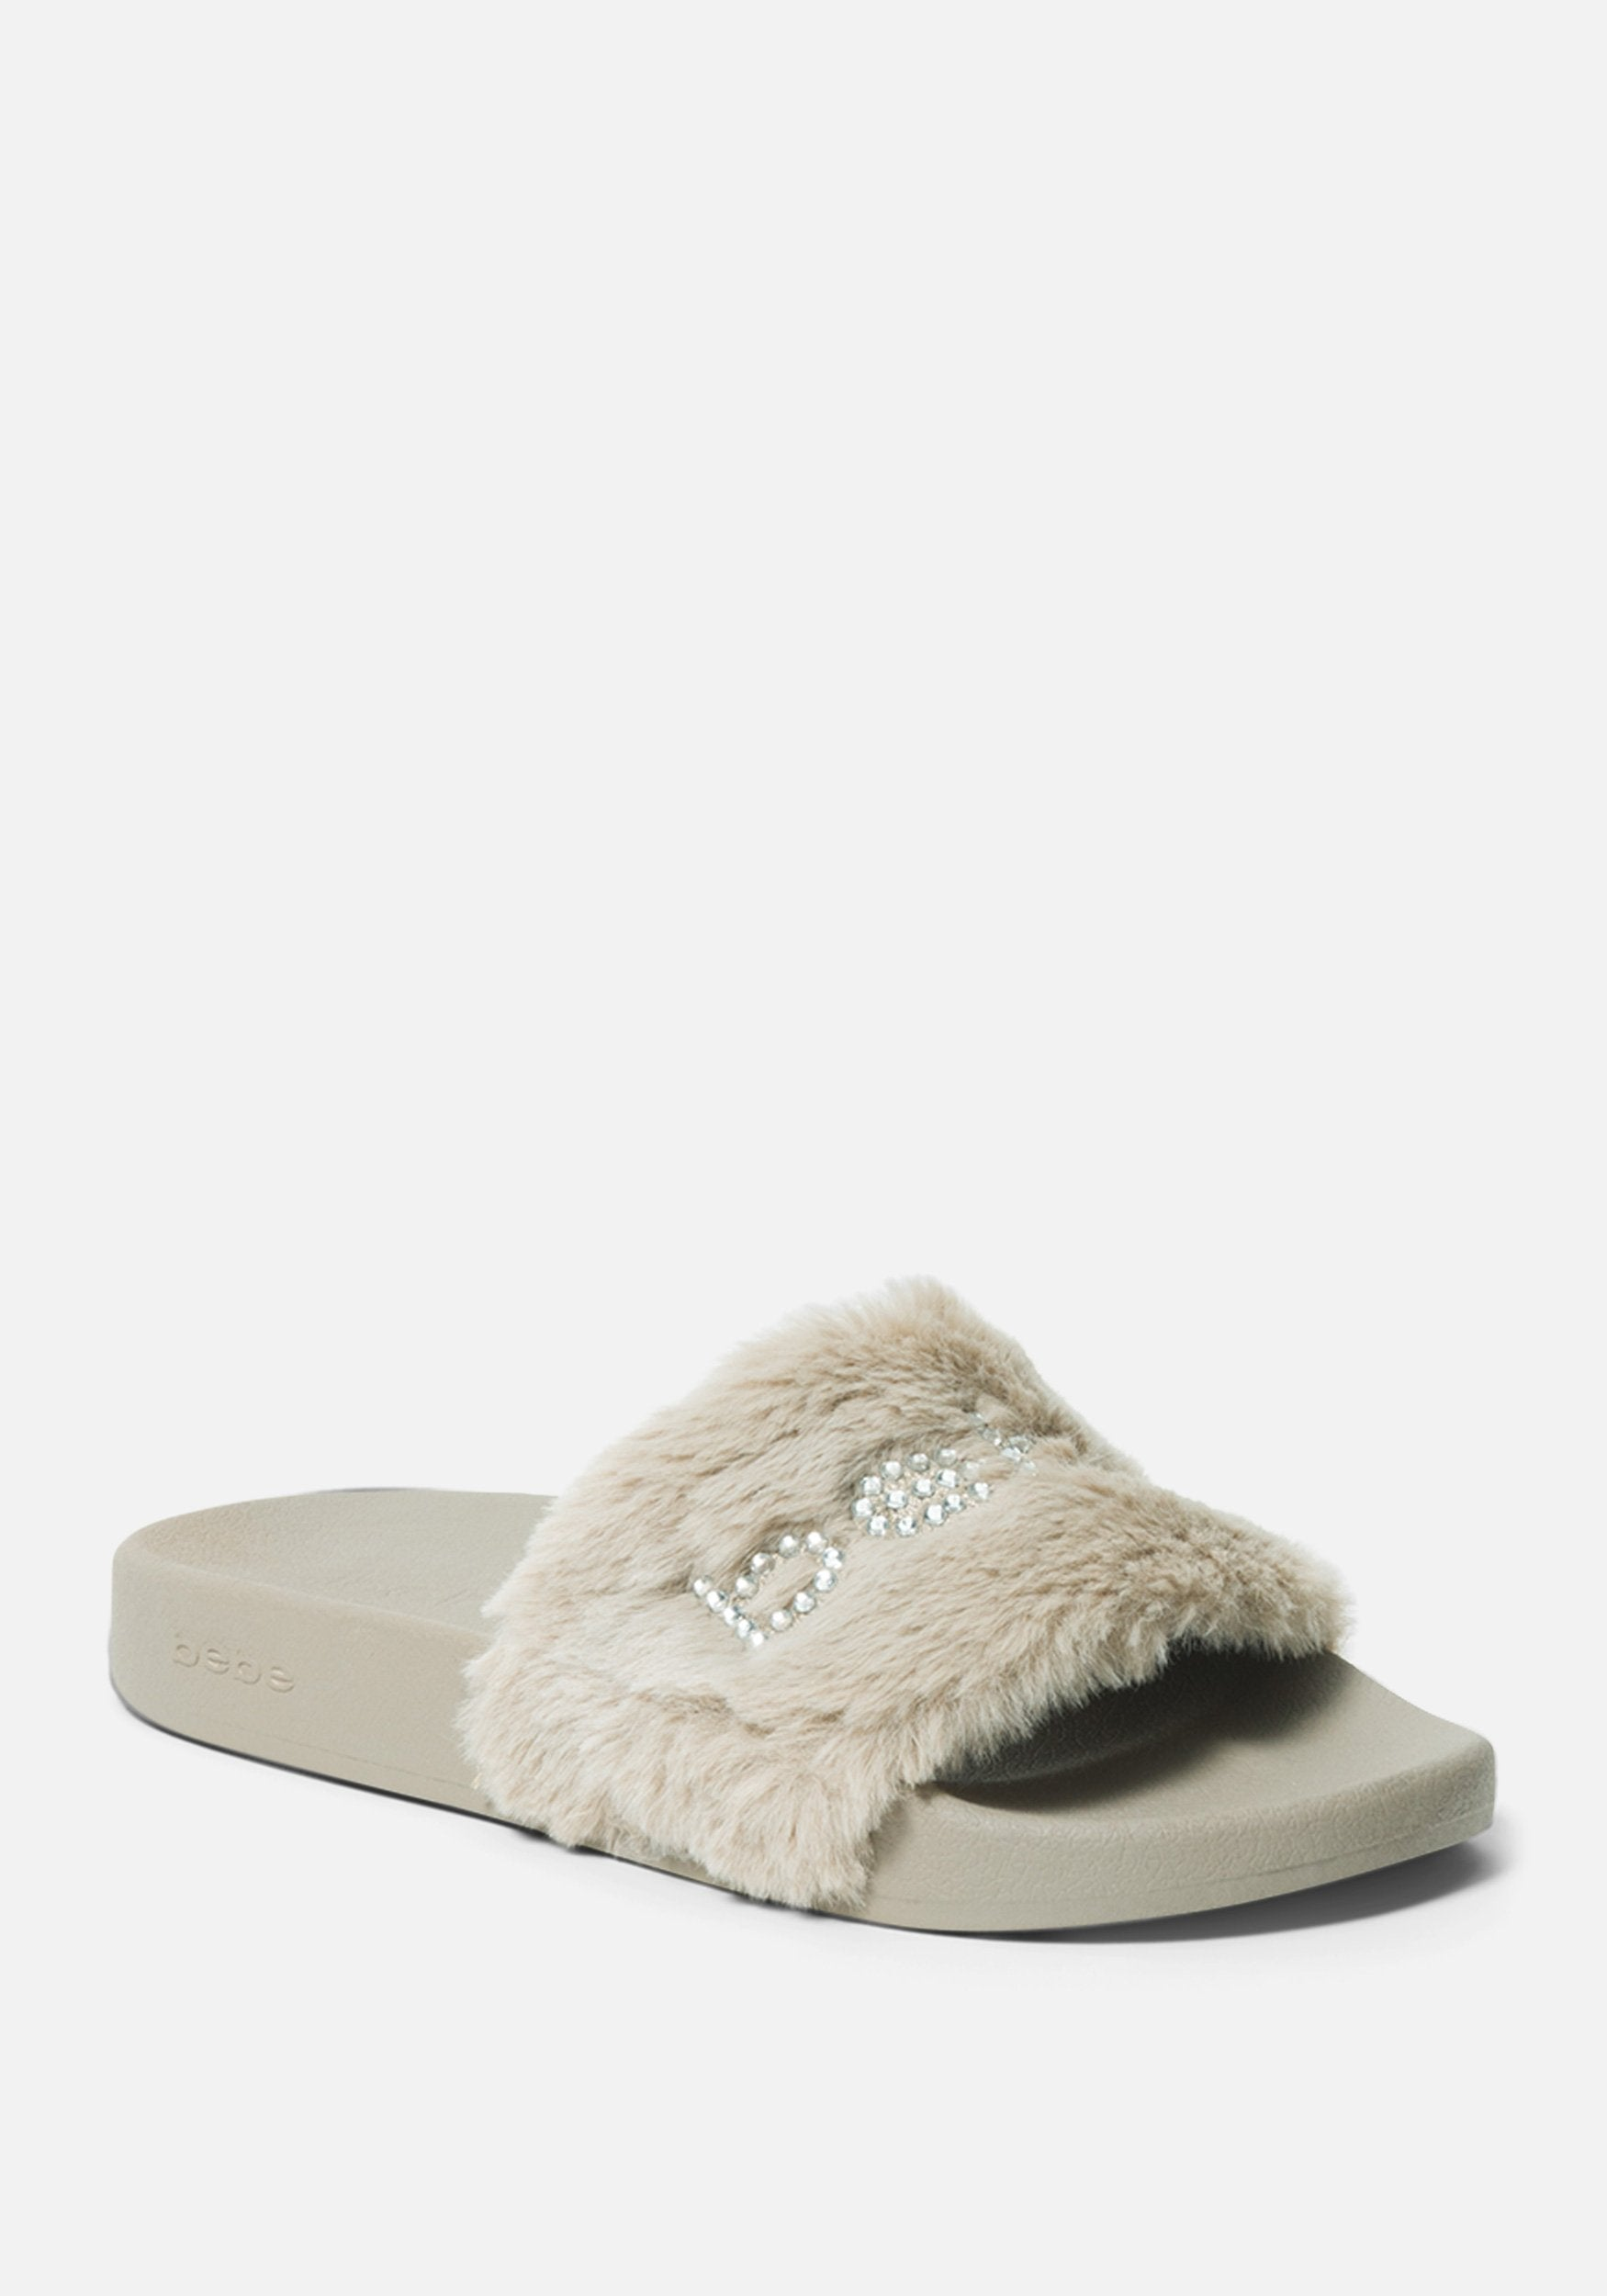 Bebe Women's Furiosa Faux Fur Slides Shoe, Size 6 in OYSTER Synthetic